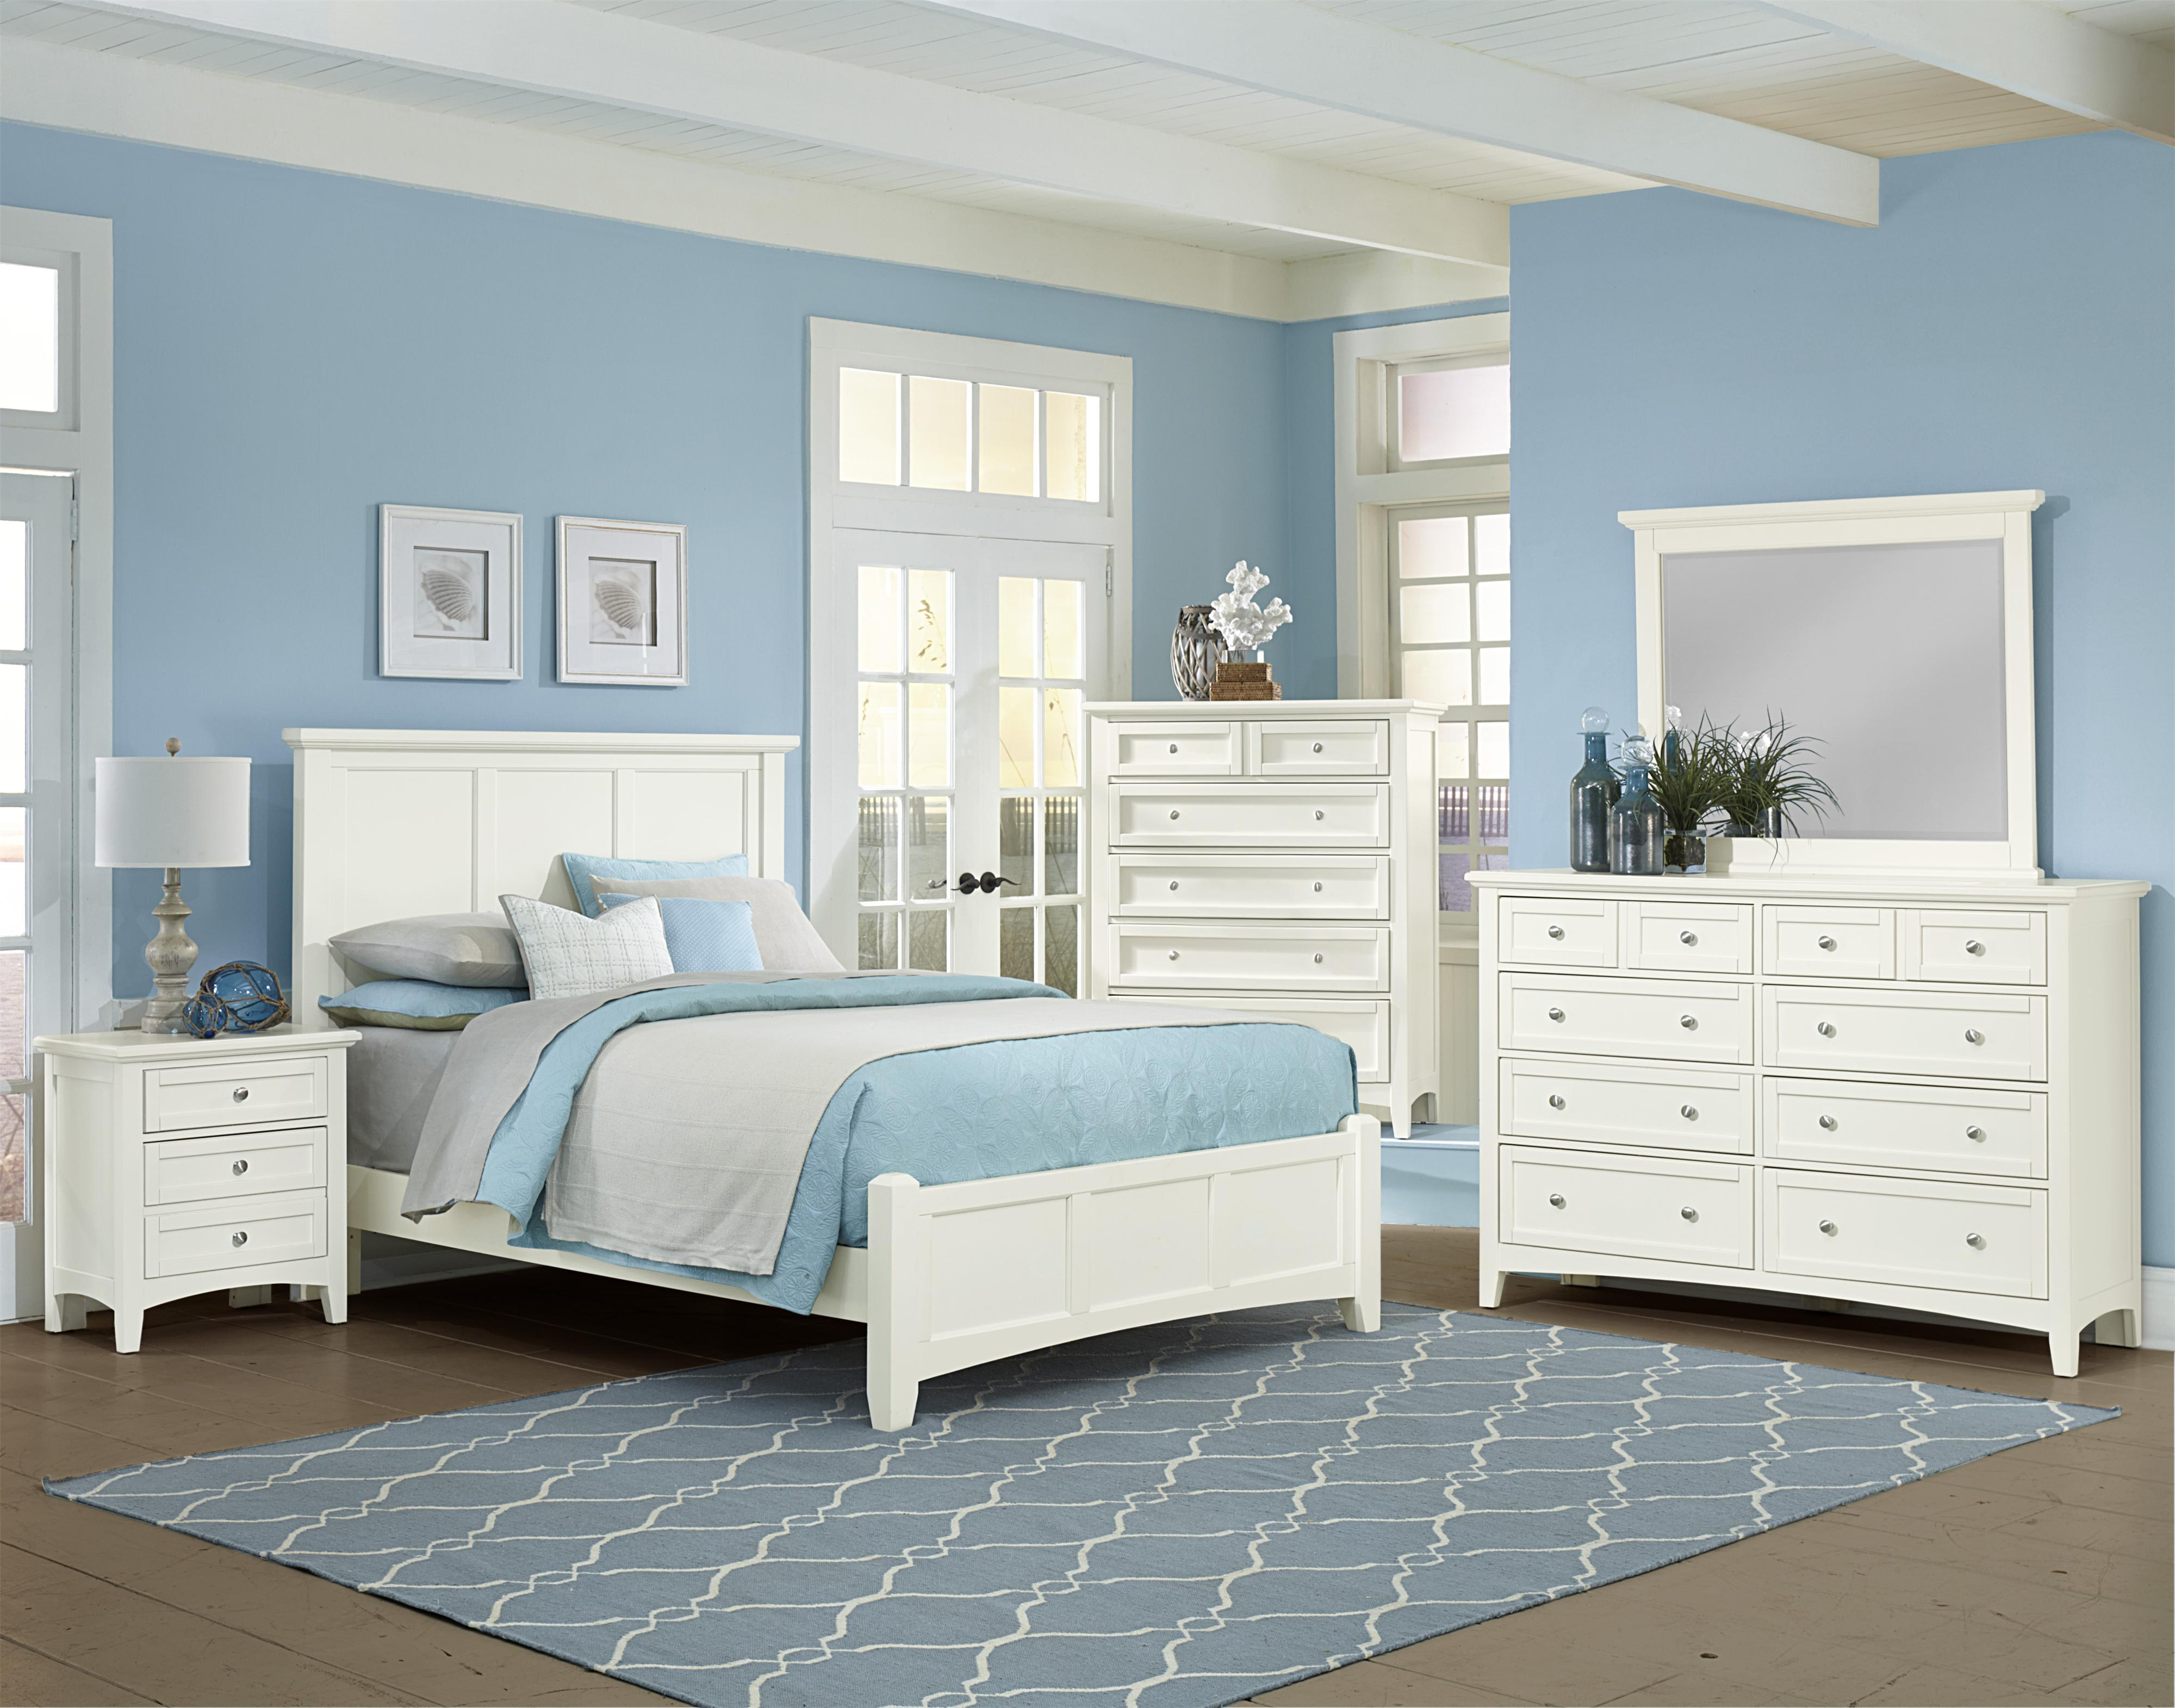 Bunkhouse Queen Bedroom Group by Vaughan-Bassett at Crowley Furniture & Mattress